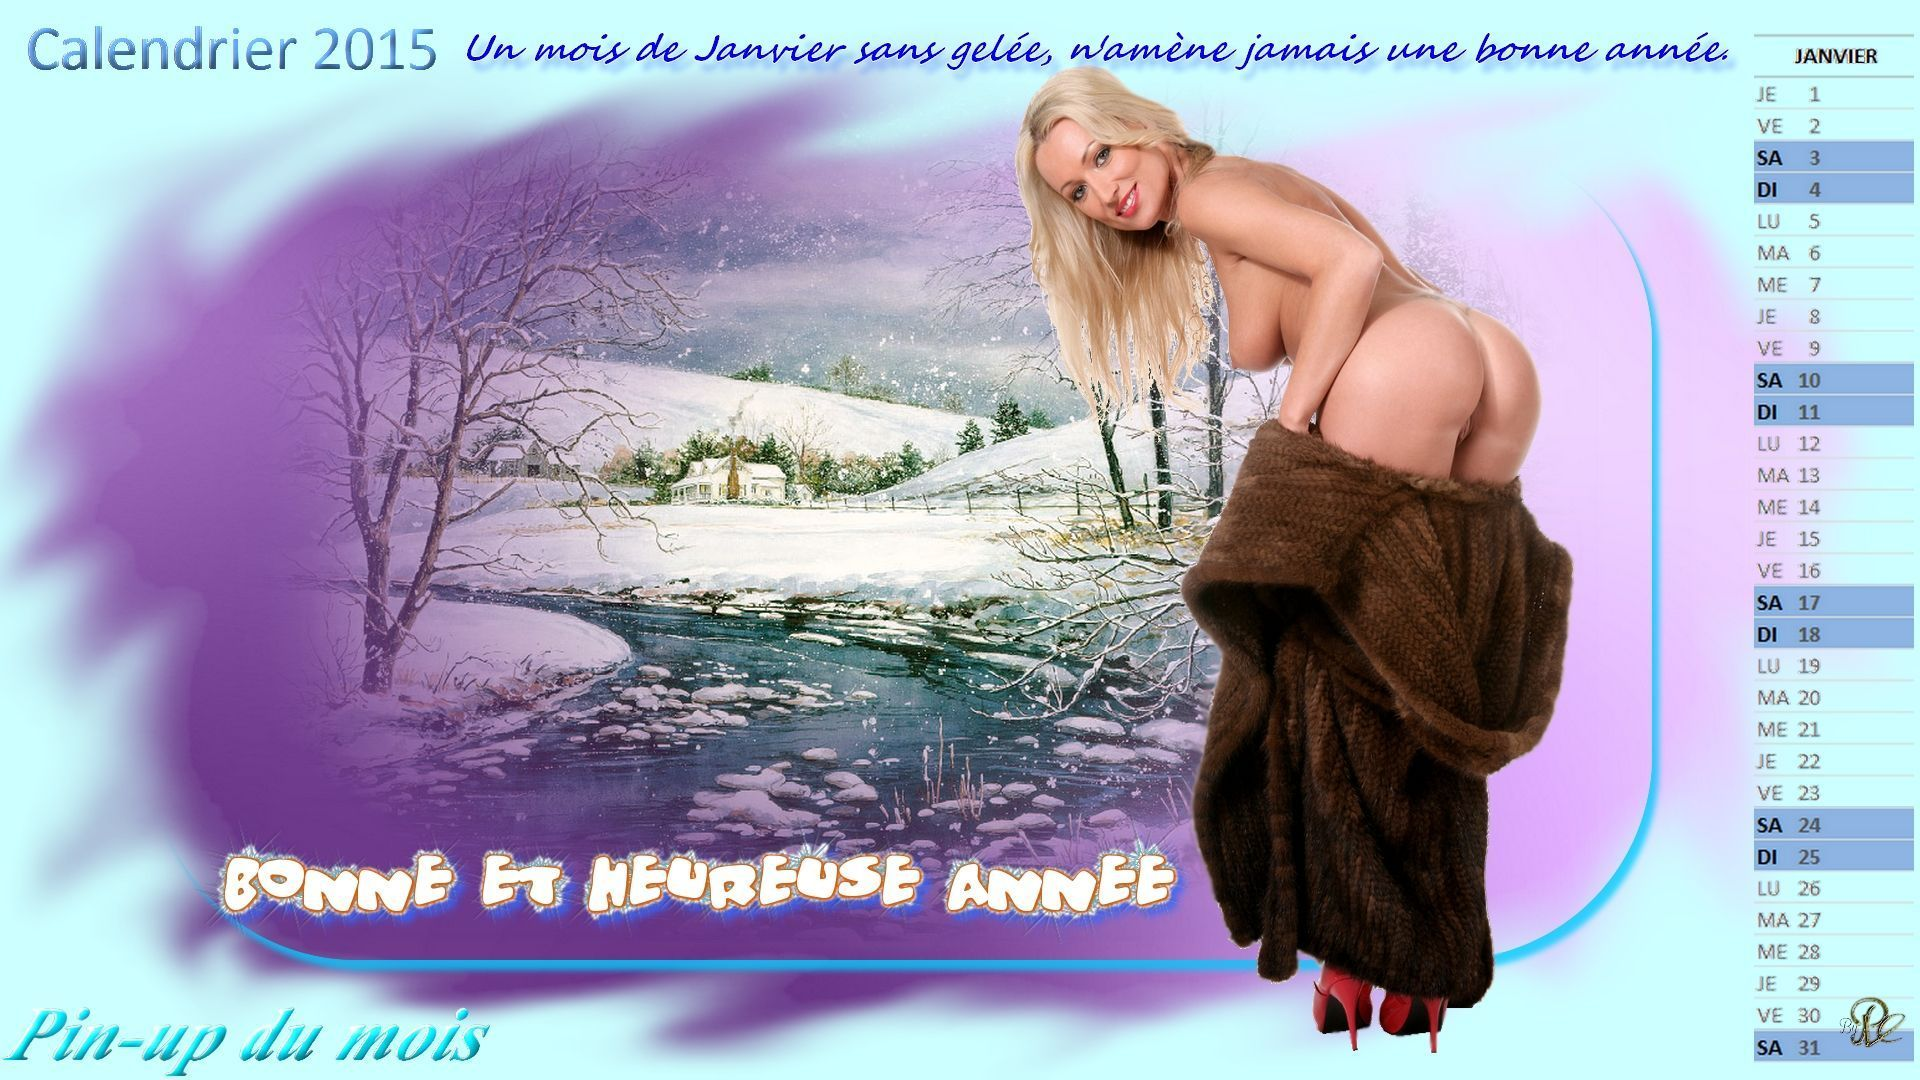 Lesfillesdunet webgirlbank - Fonds d'ecran wallpapers de